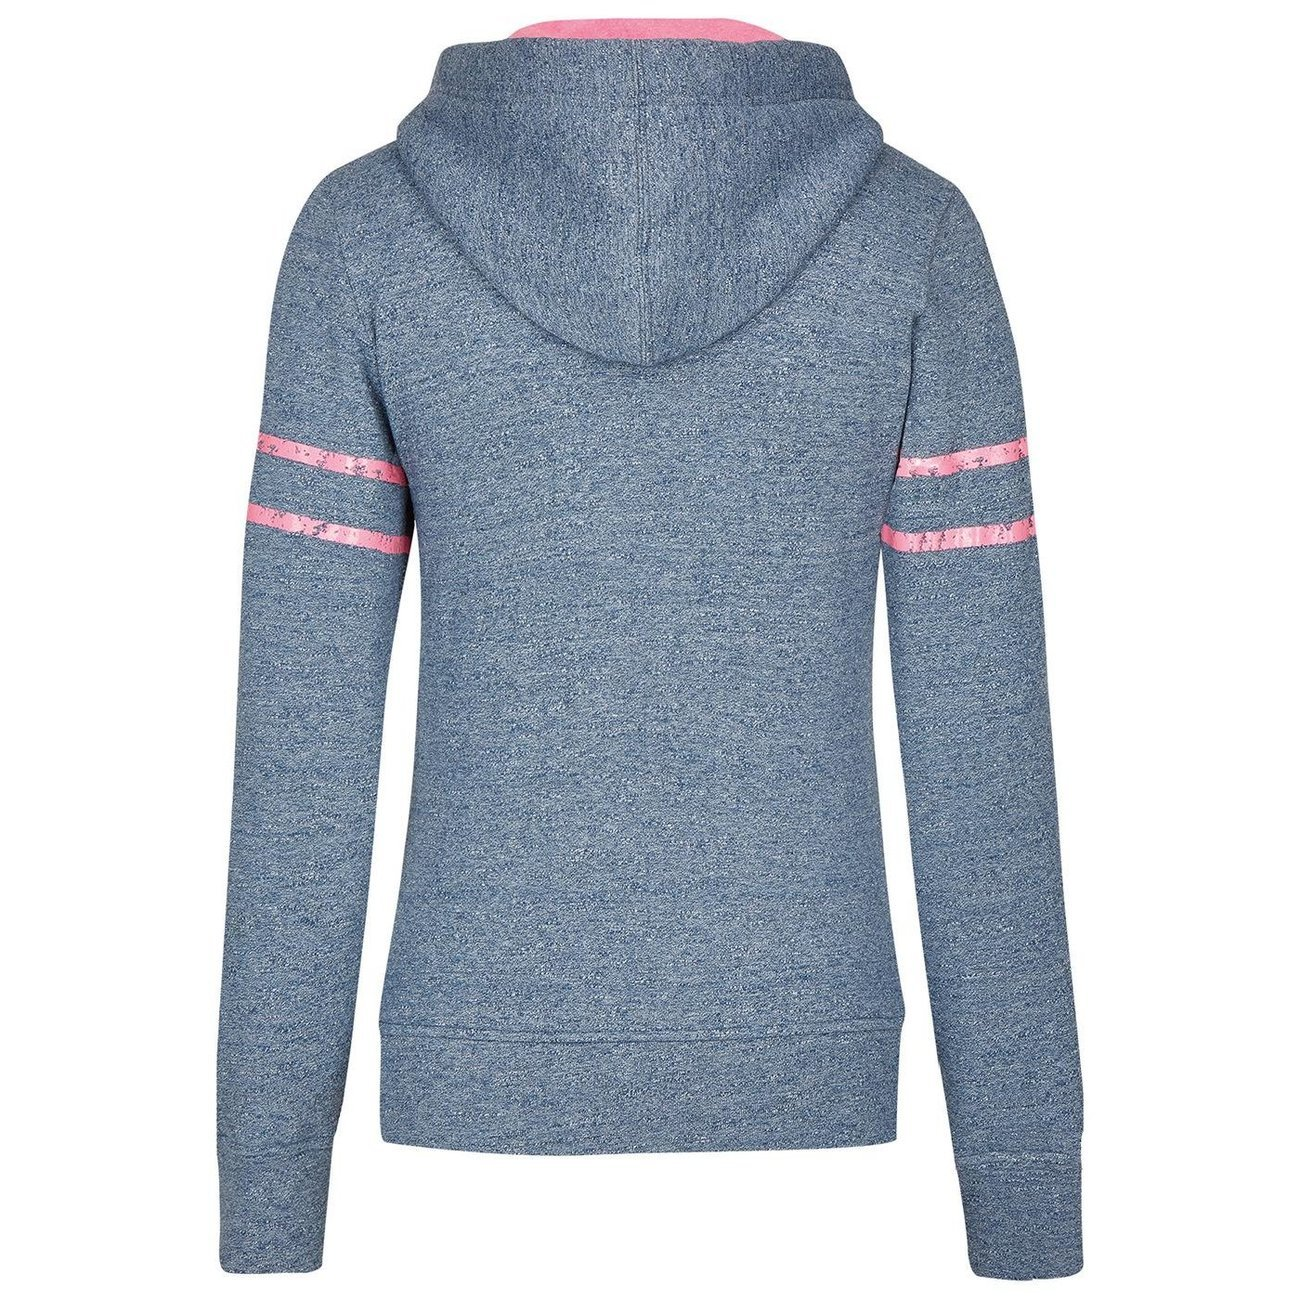 BUSSE Hoodie Passion and Performance, Bild 6